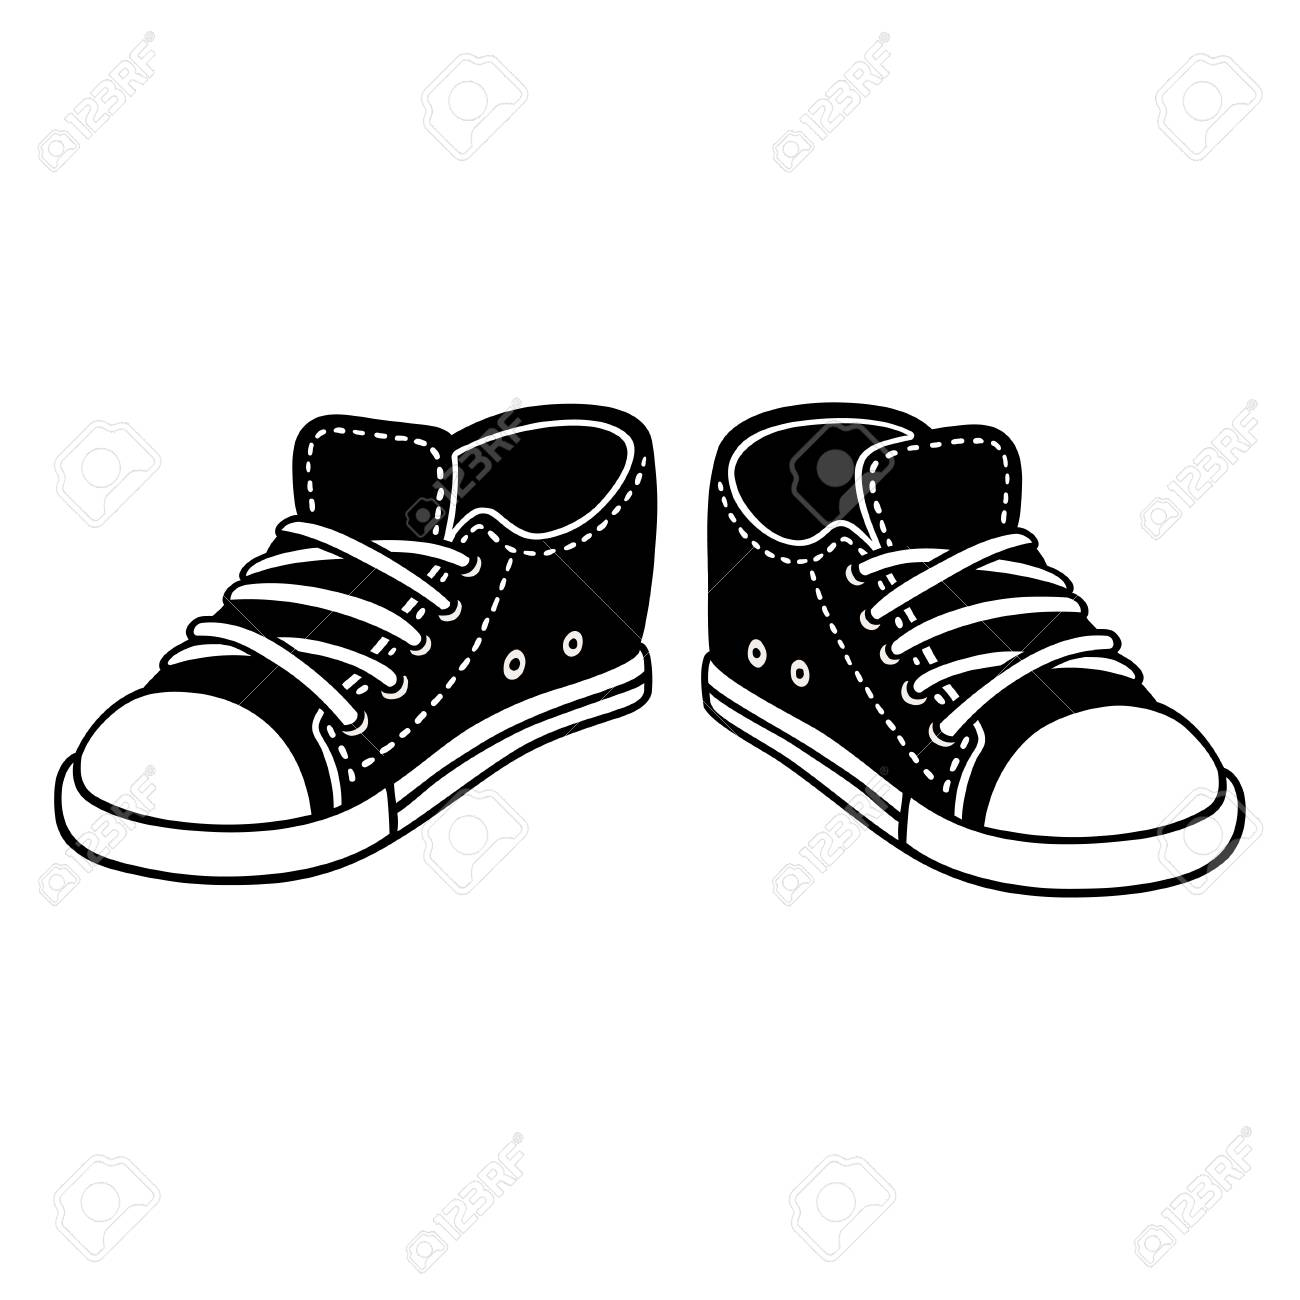 black canvas sneakers cartoon drawing classic sports shoes hand